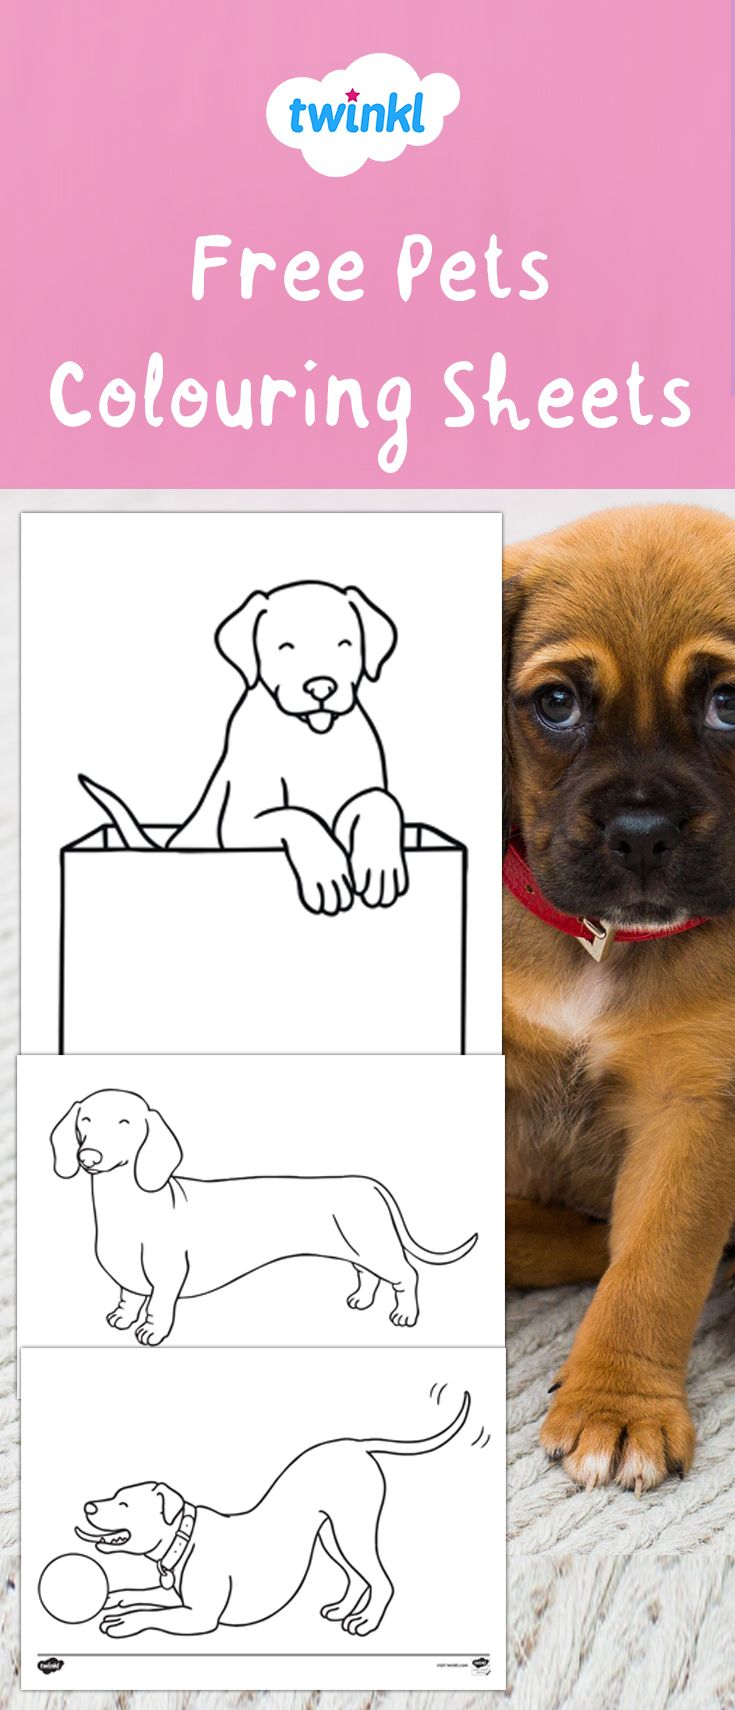 Perfect For National Pets Month Use These Free Pets Colouring Sheets For A Fun Fine Motor Skills Activity As Well As Making Cute Picture Motor Skills Activities Coloring Sheets Home